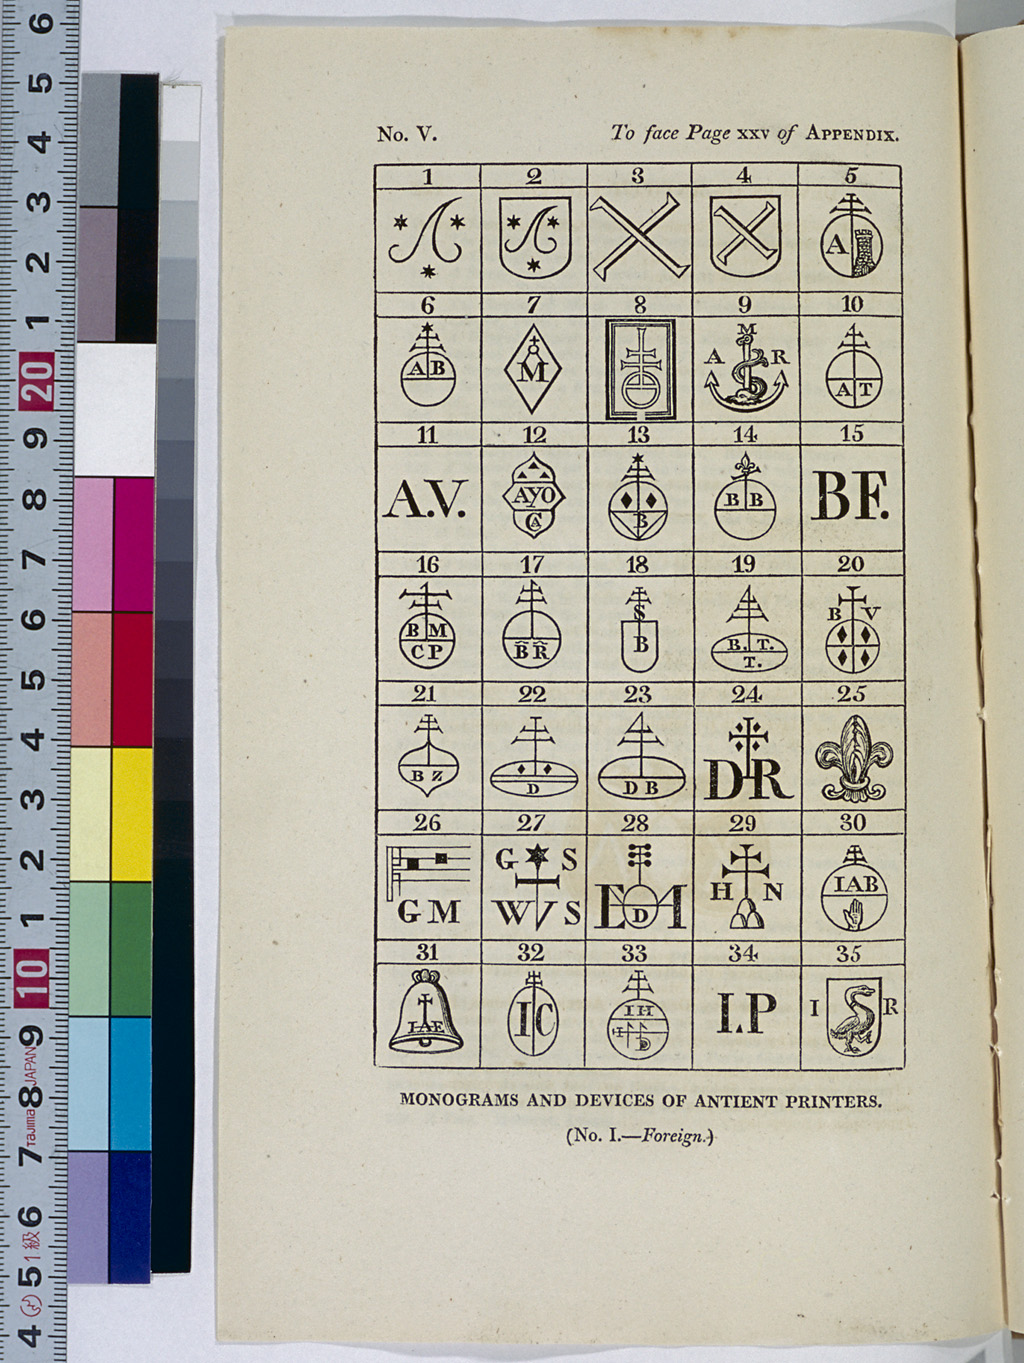 Collection Of Printers Marks In Horne An Introduction To The Study